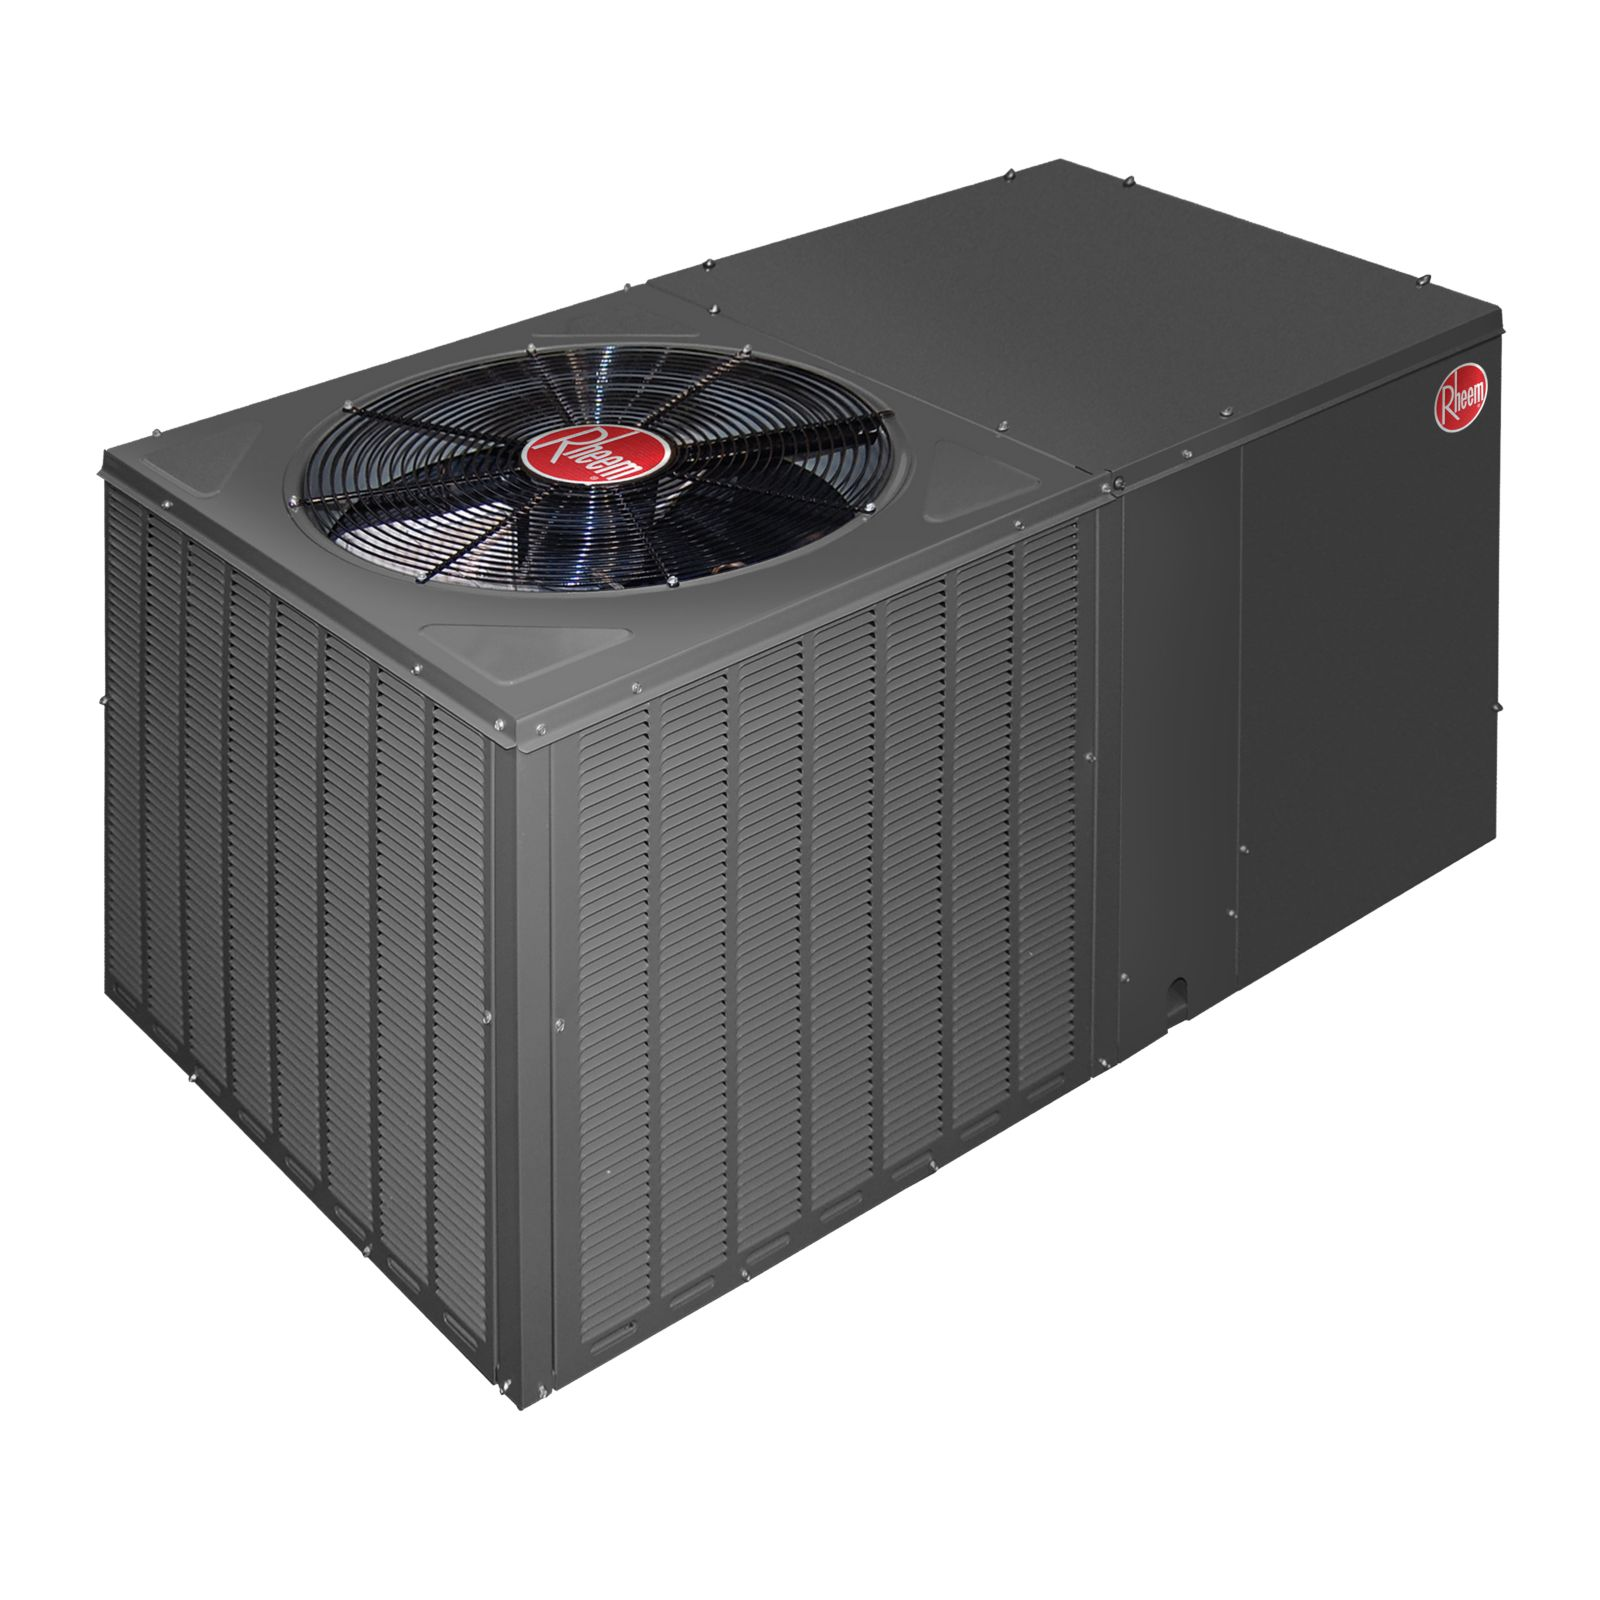 Rheem RQRM-A060JK000AUA - Classic 5 Ton 15/16 SEER, R-410A, Packaged Heat Pump With Horizontal Discharge, 208-230V, 1 Phase